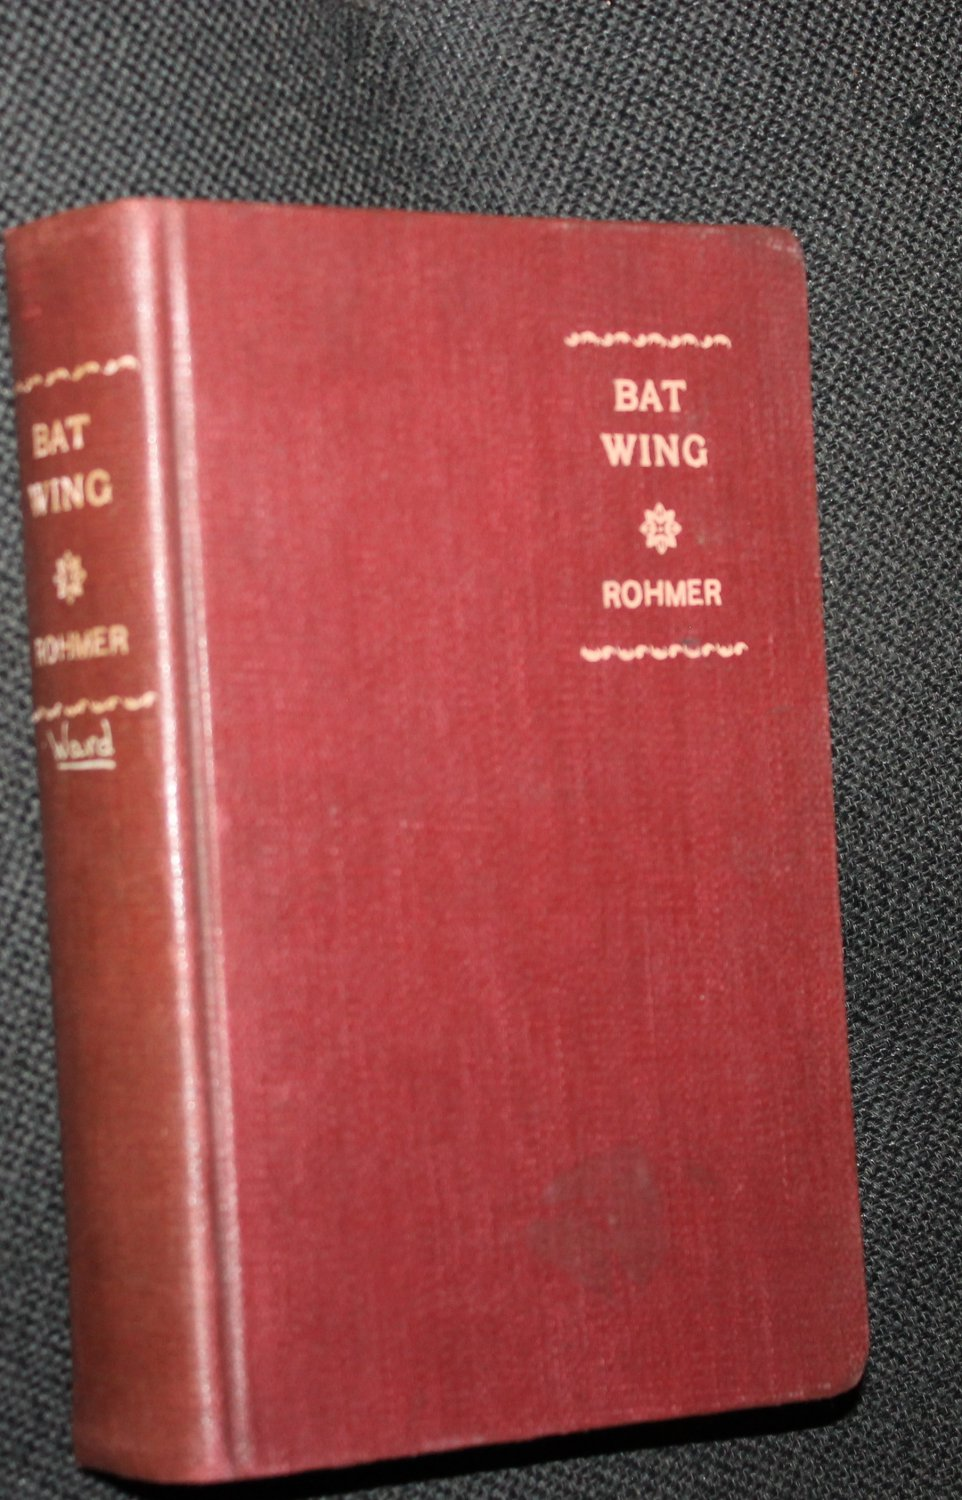 1921 Bat Wing by Sax Rohmer hardcover vintage book